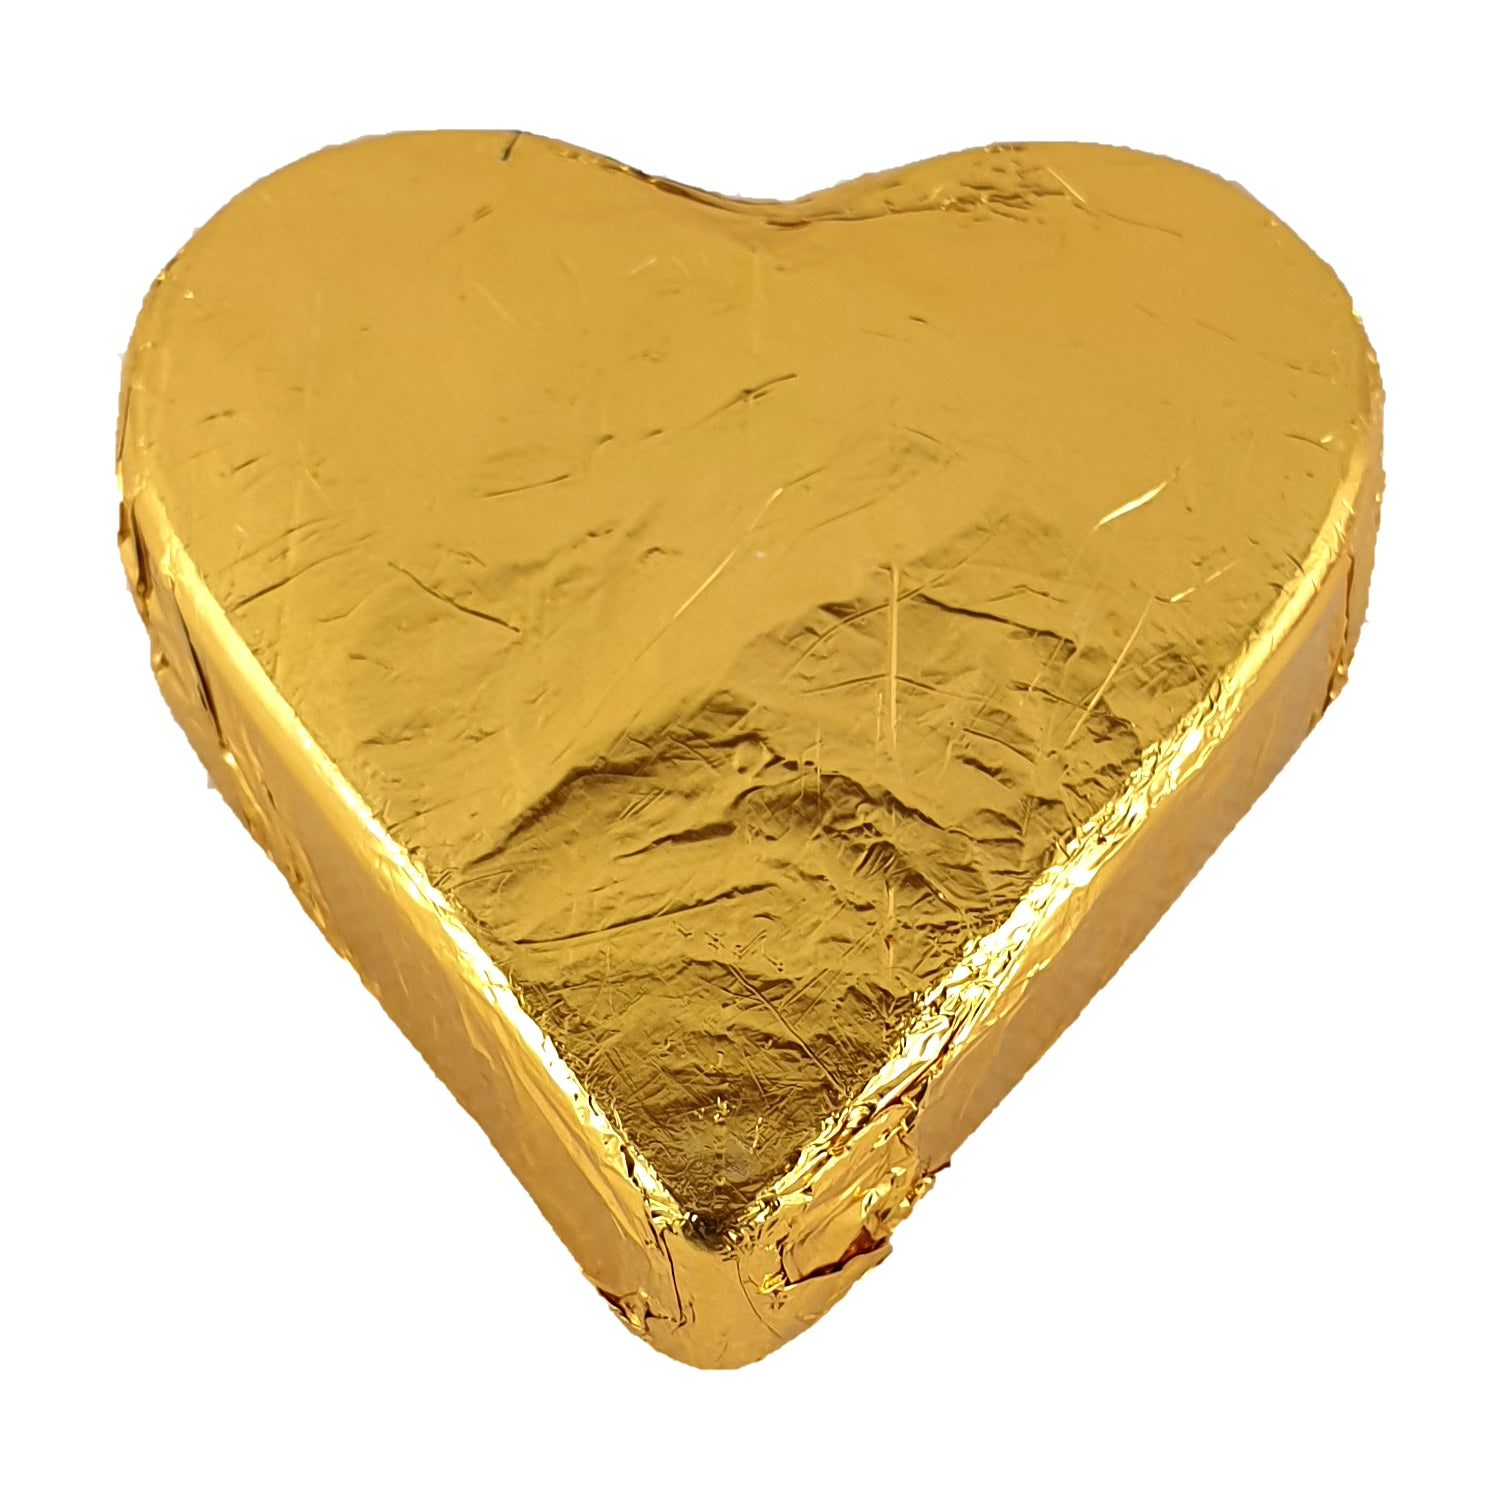 Heart Dark Chocolate Foiled 24g